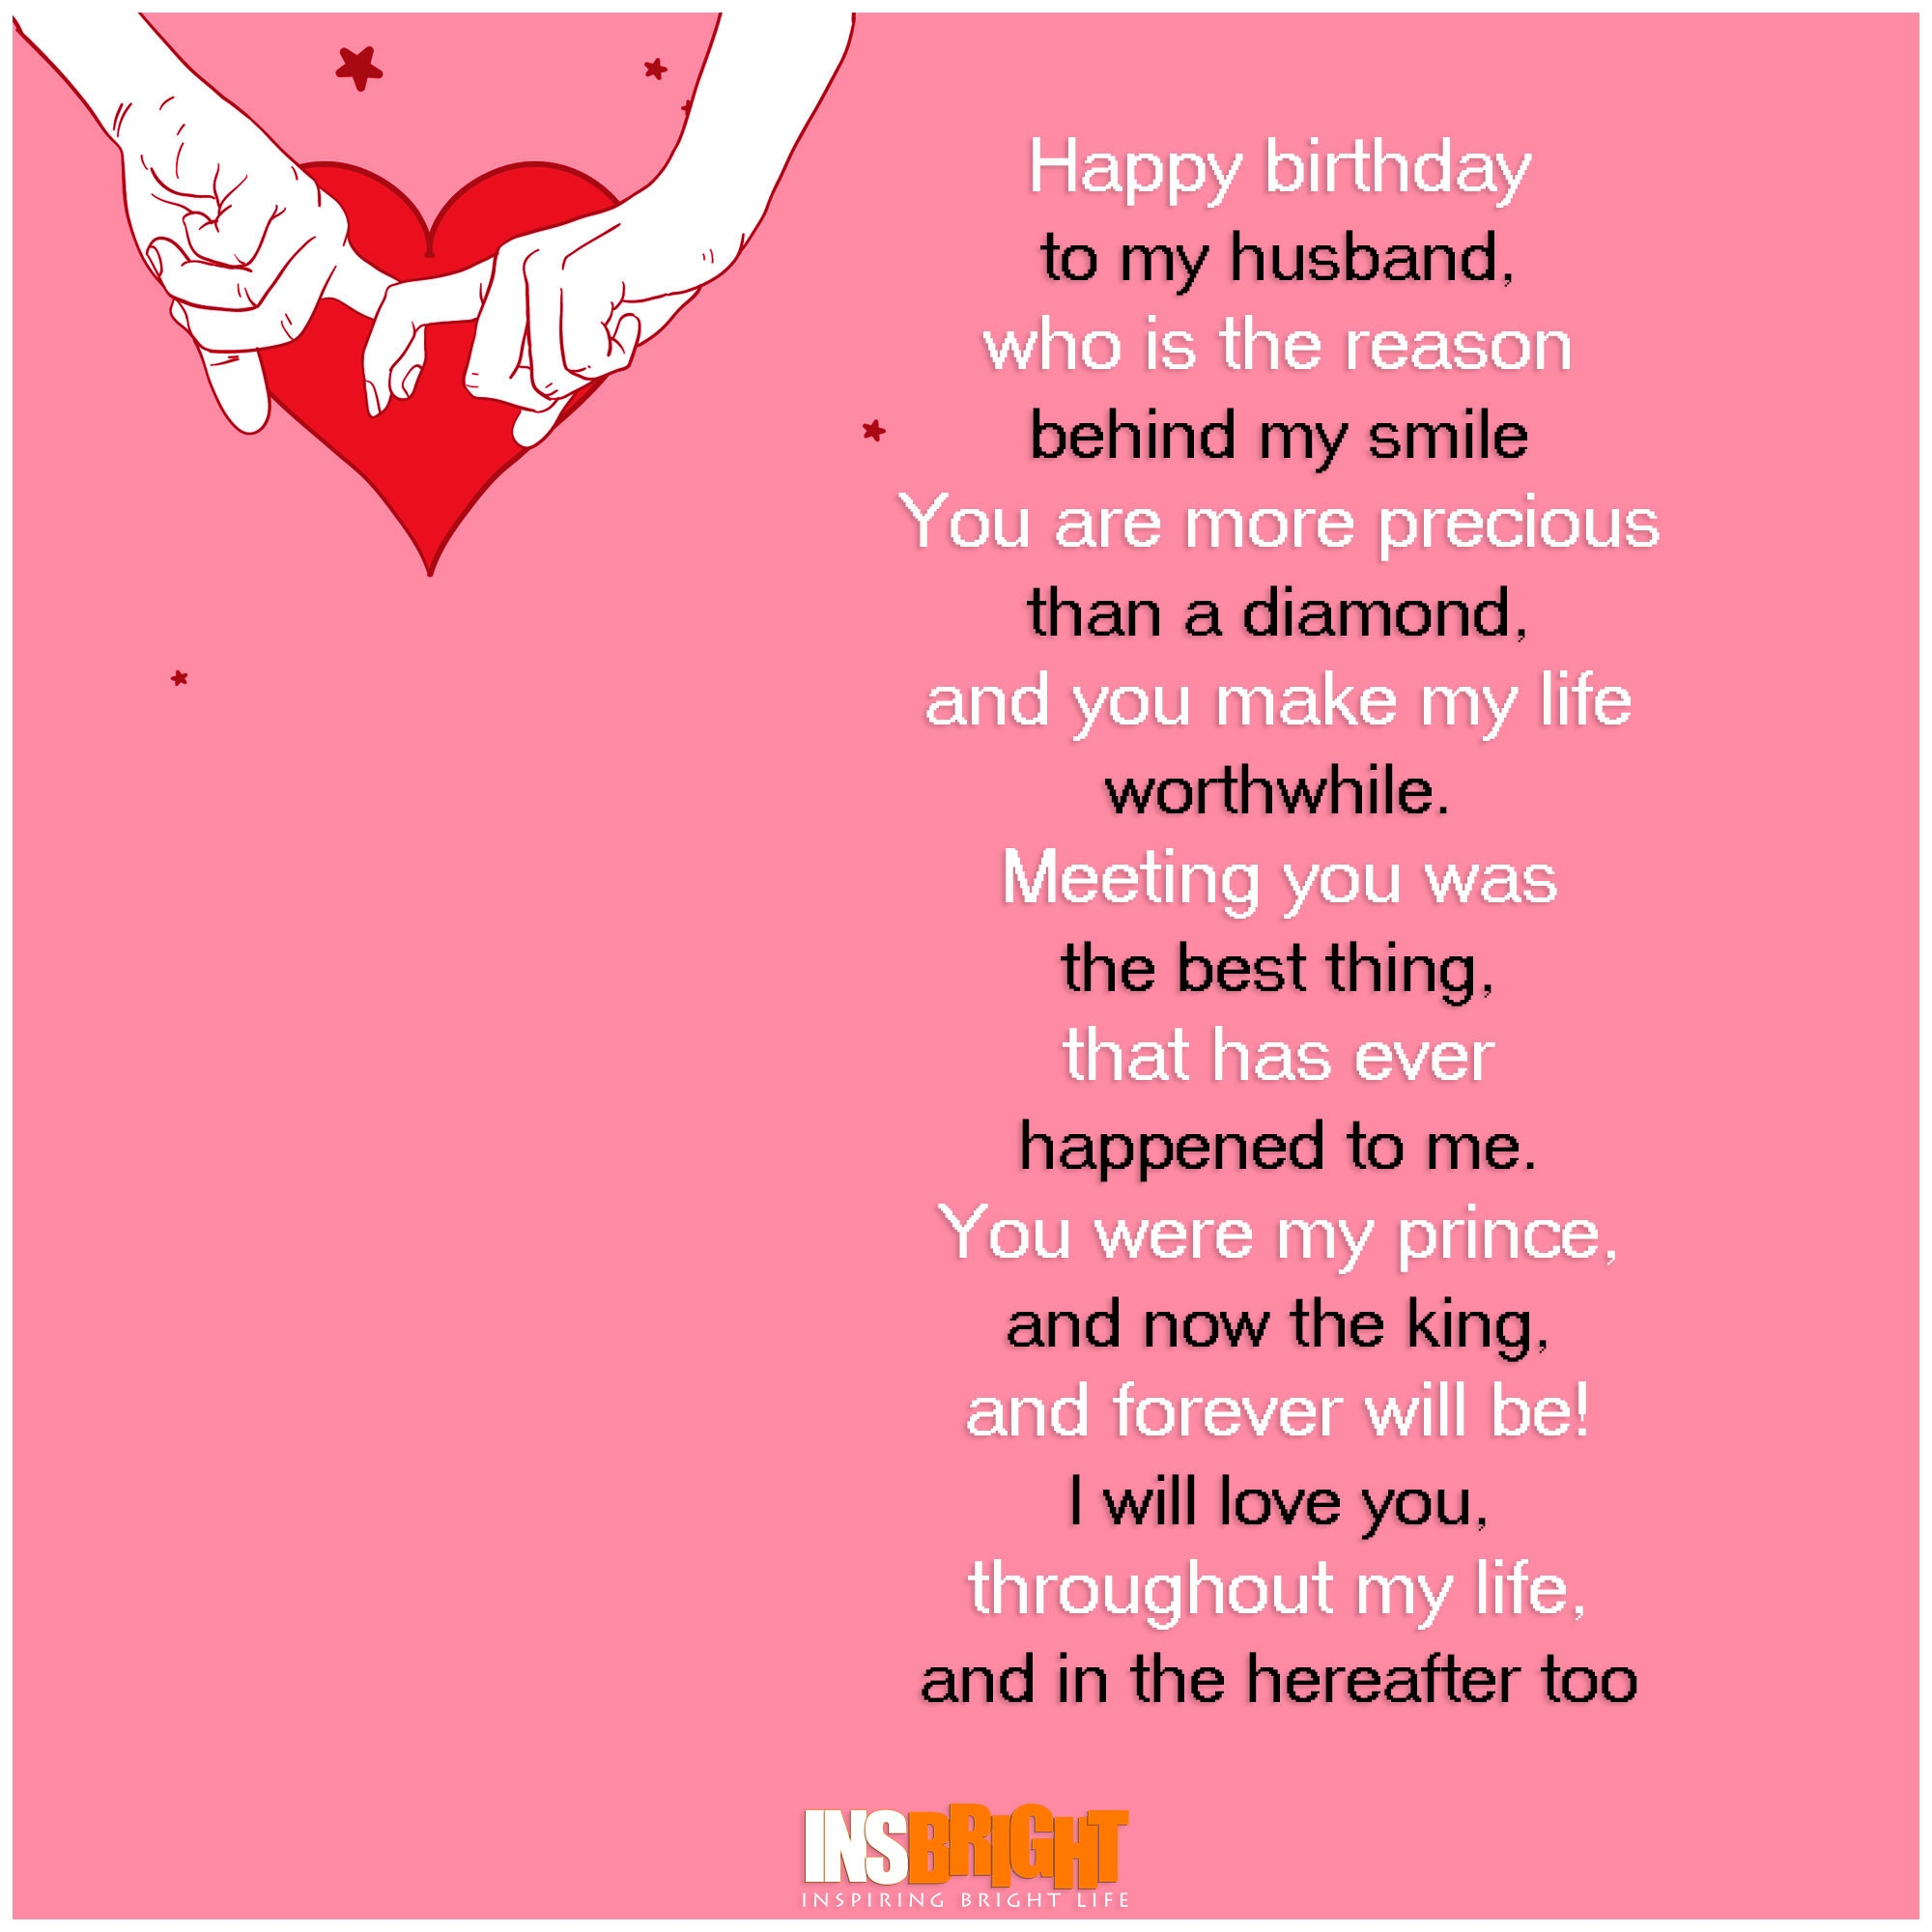 birthday poem for wife funny ; happy-birthday-to-my-husband-funny-quotes-inspirational-romantic-happy-birthday-poems-for-husband-from-wife-of-happy-birthday-to-my-husband-funny-quotes